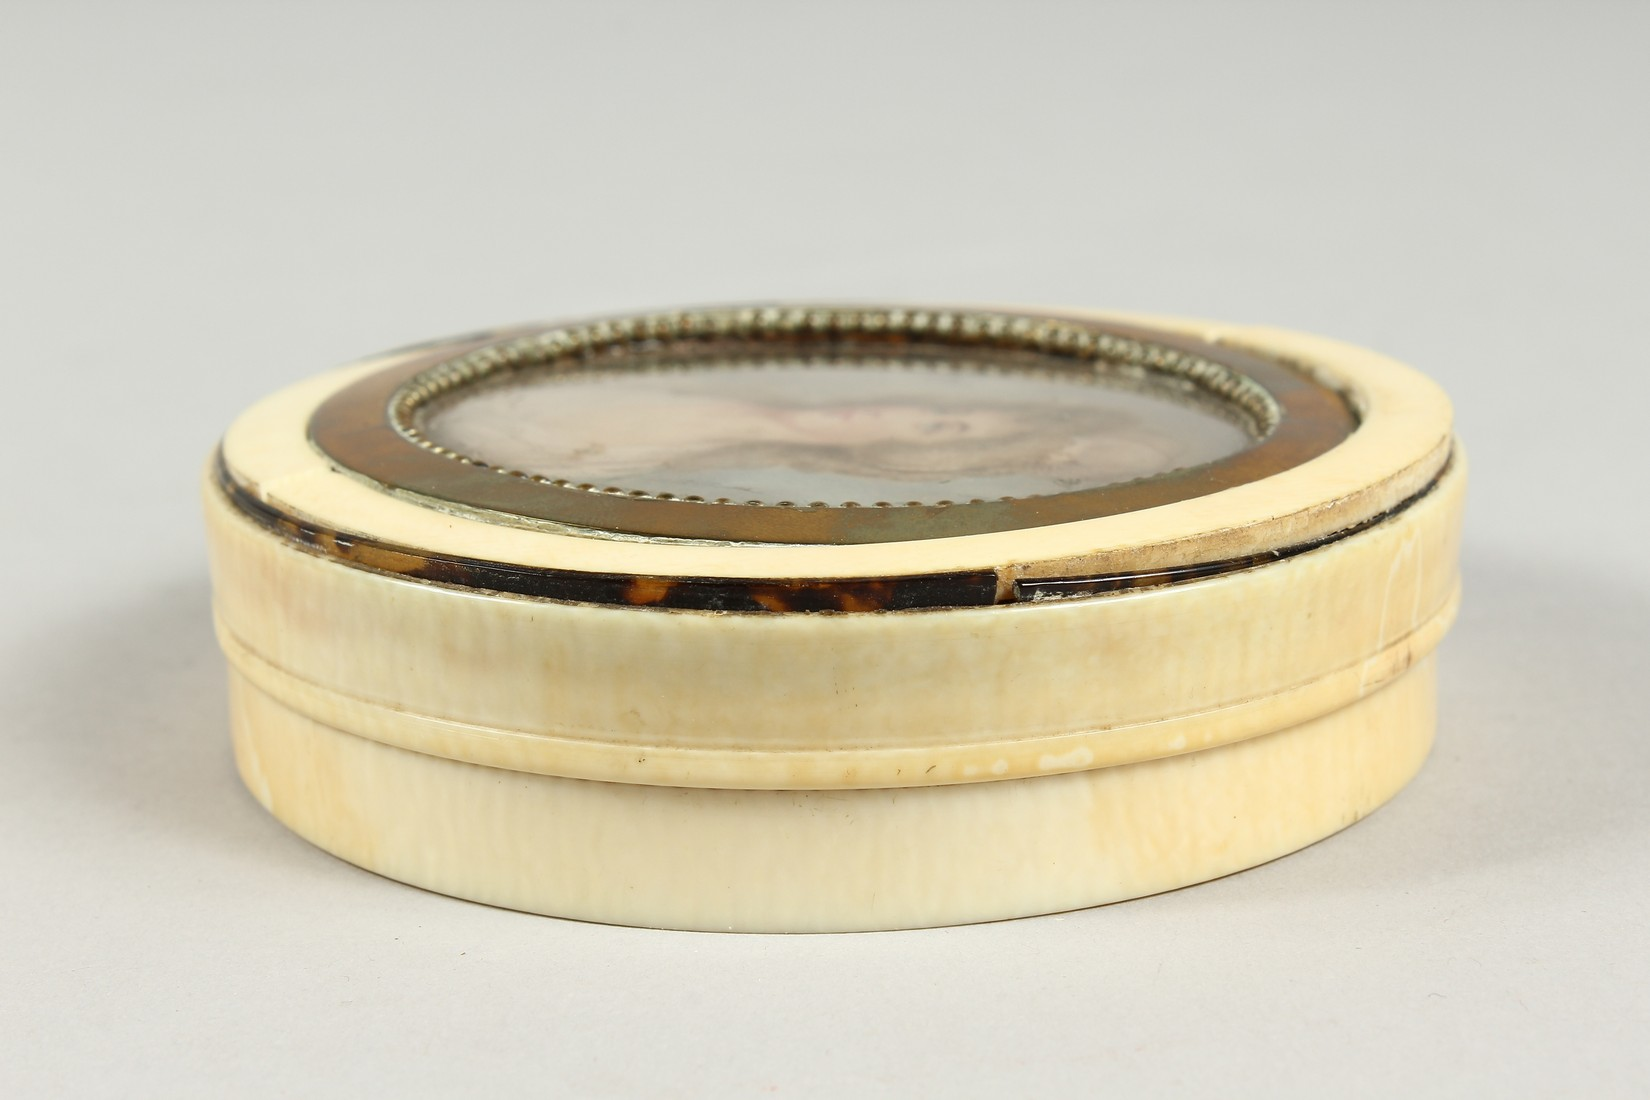 A GEORGIAN IVORY CIRCULAR BOX, the top painted with a portrait of Lady Mary Onslow. 3.75ins - Image 6 of 8